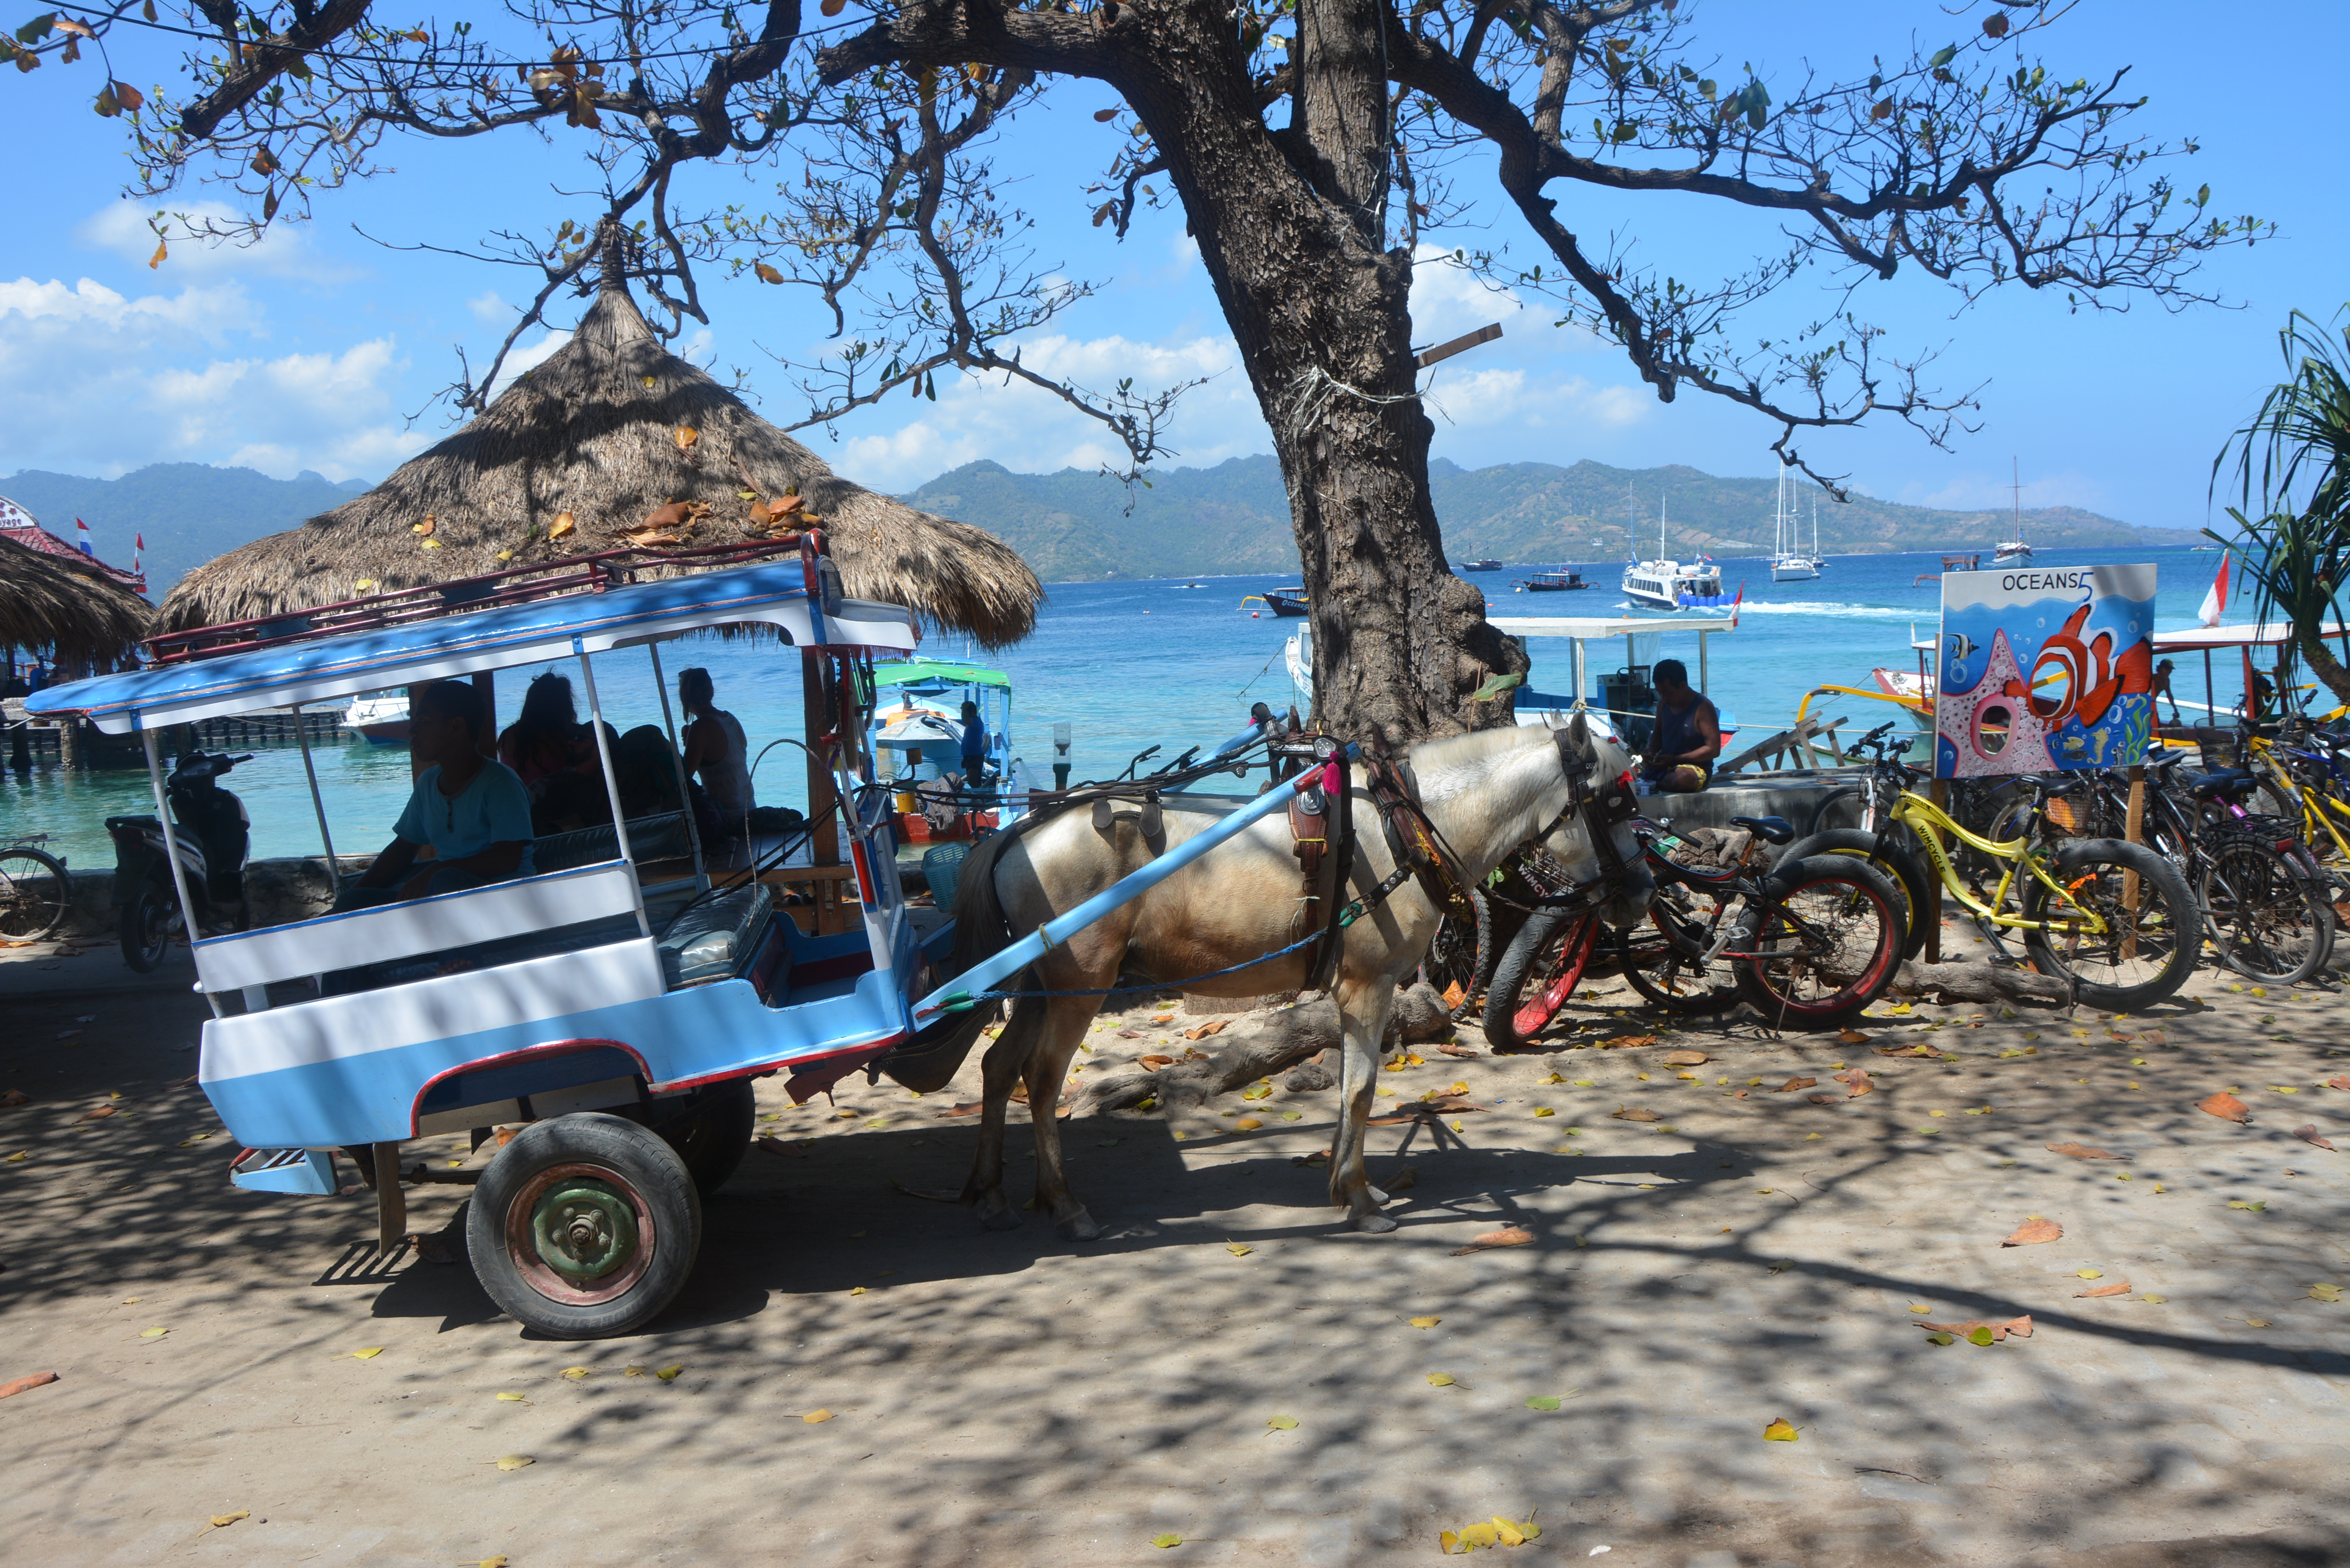 Gili air horses abused